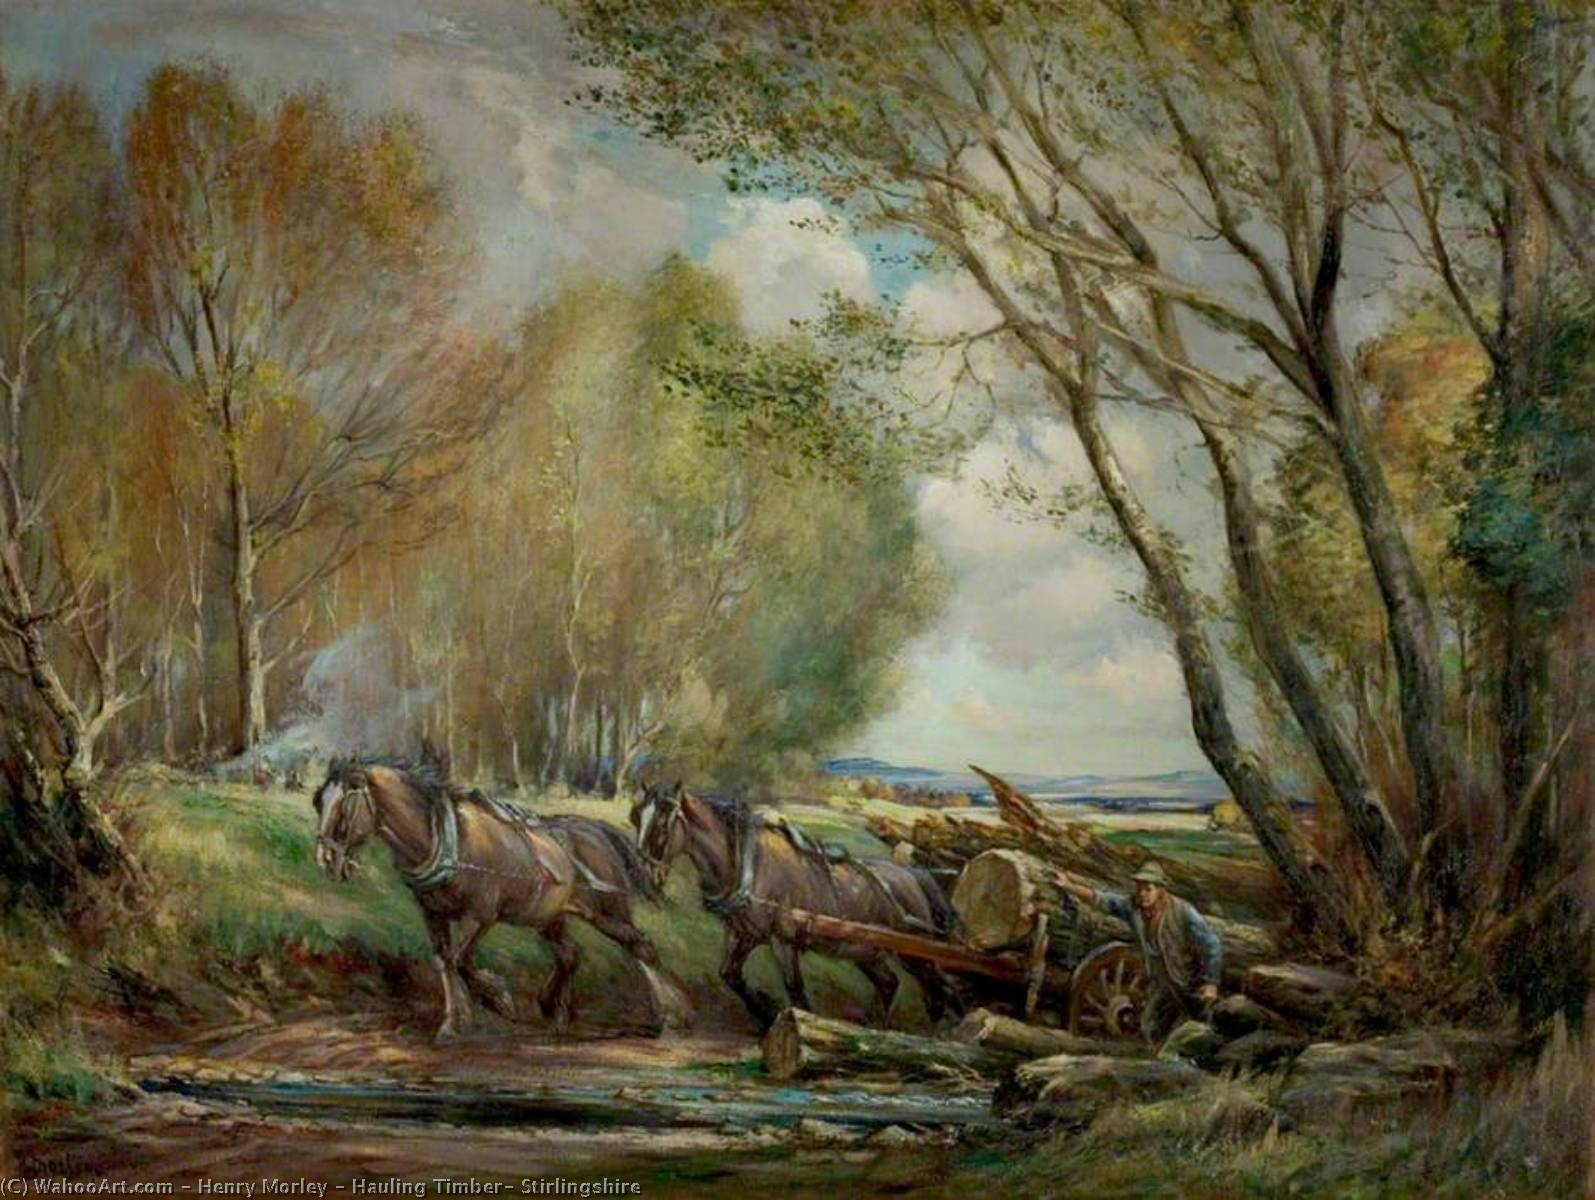 Hauling Timber, Stirlingshire, Oil On Canvas by Henry Morley